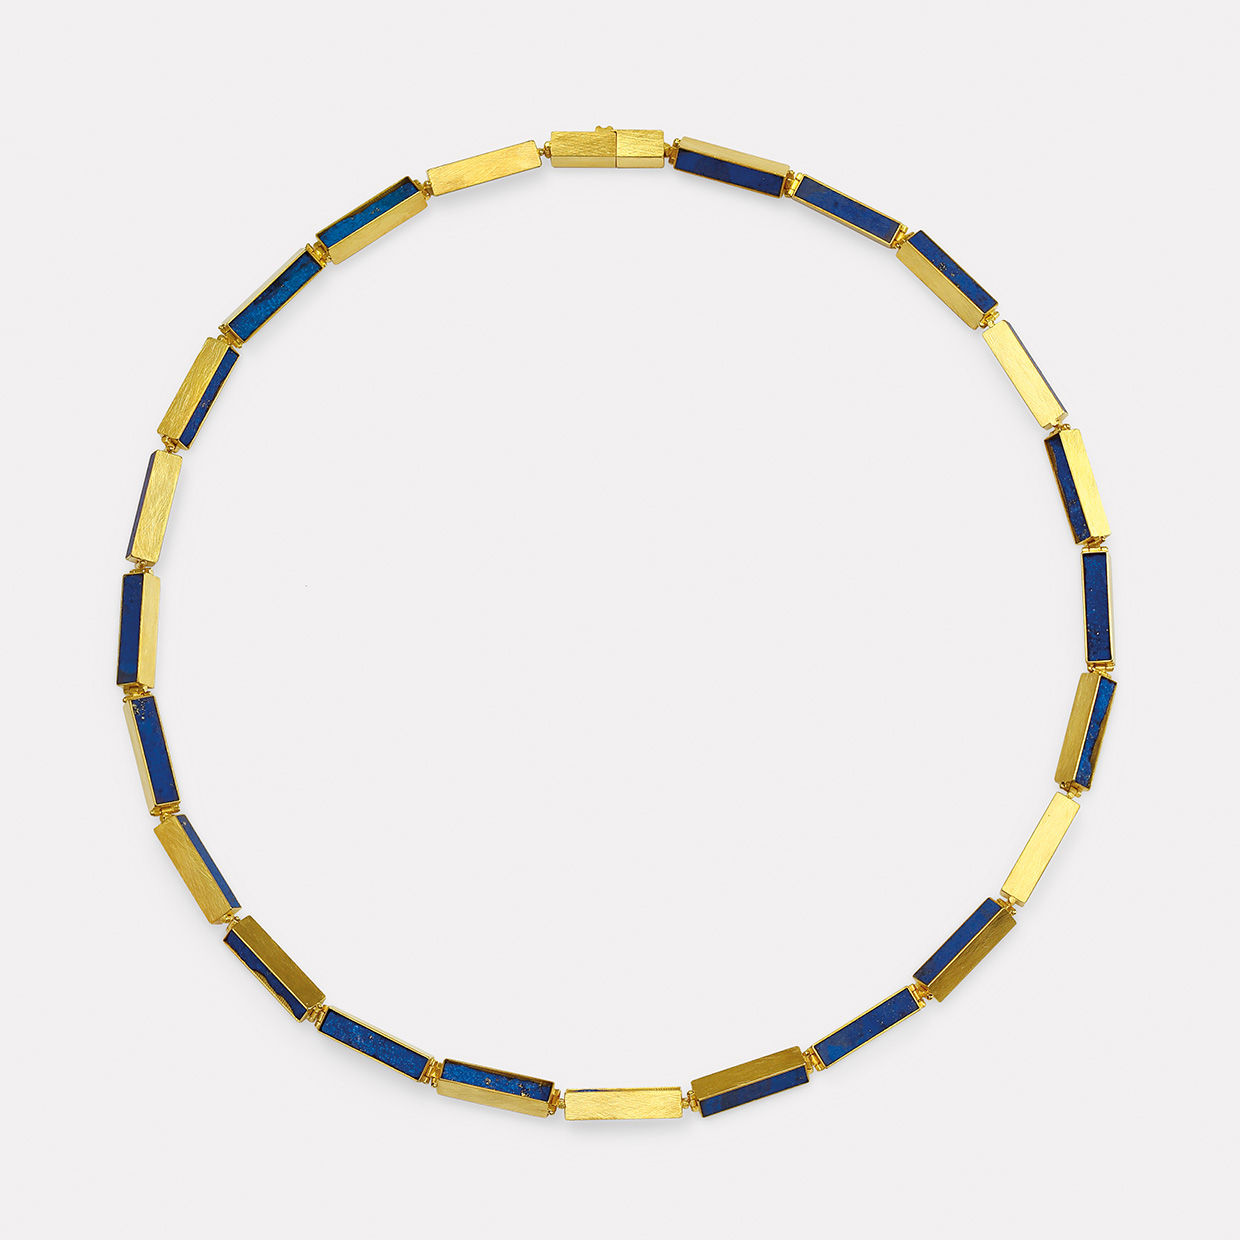 necklace  2019  gold  750  lapislazuli  510x5x5  mm